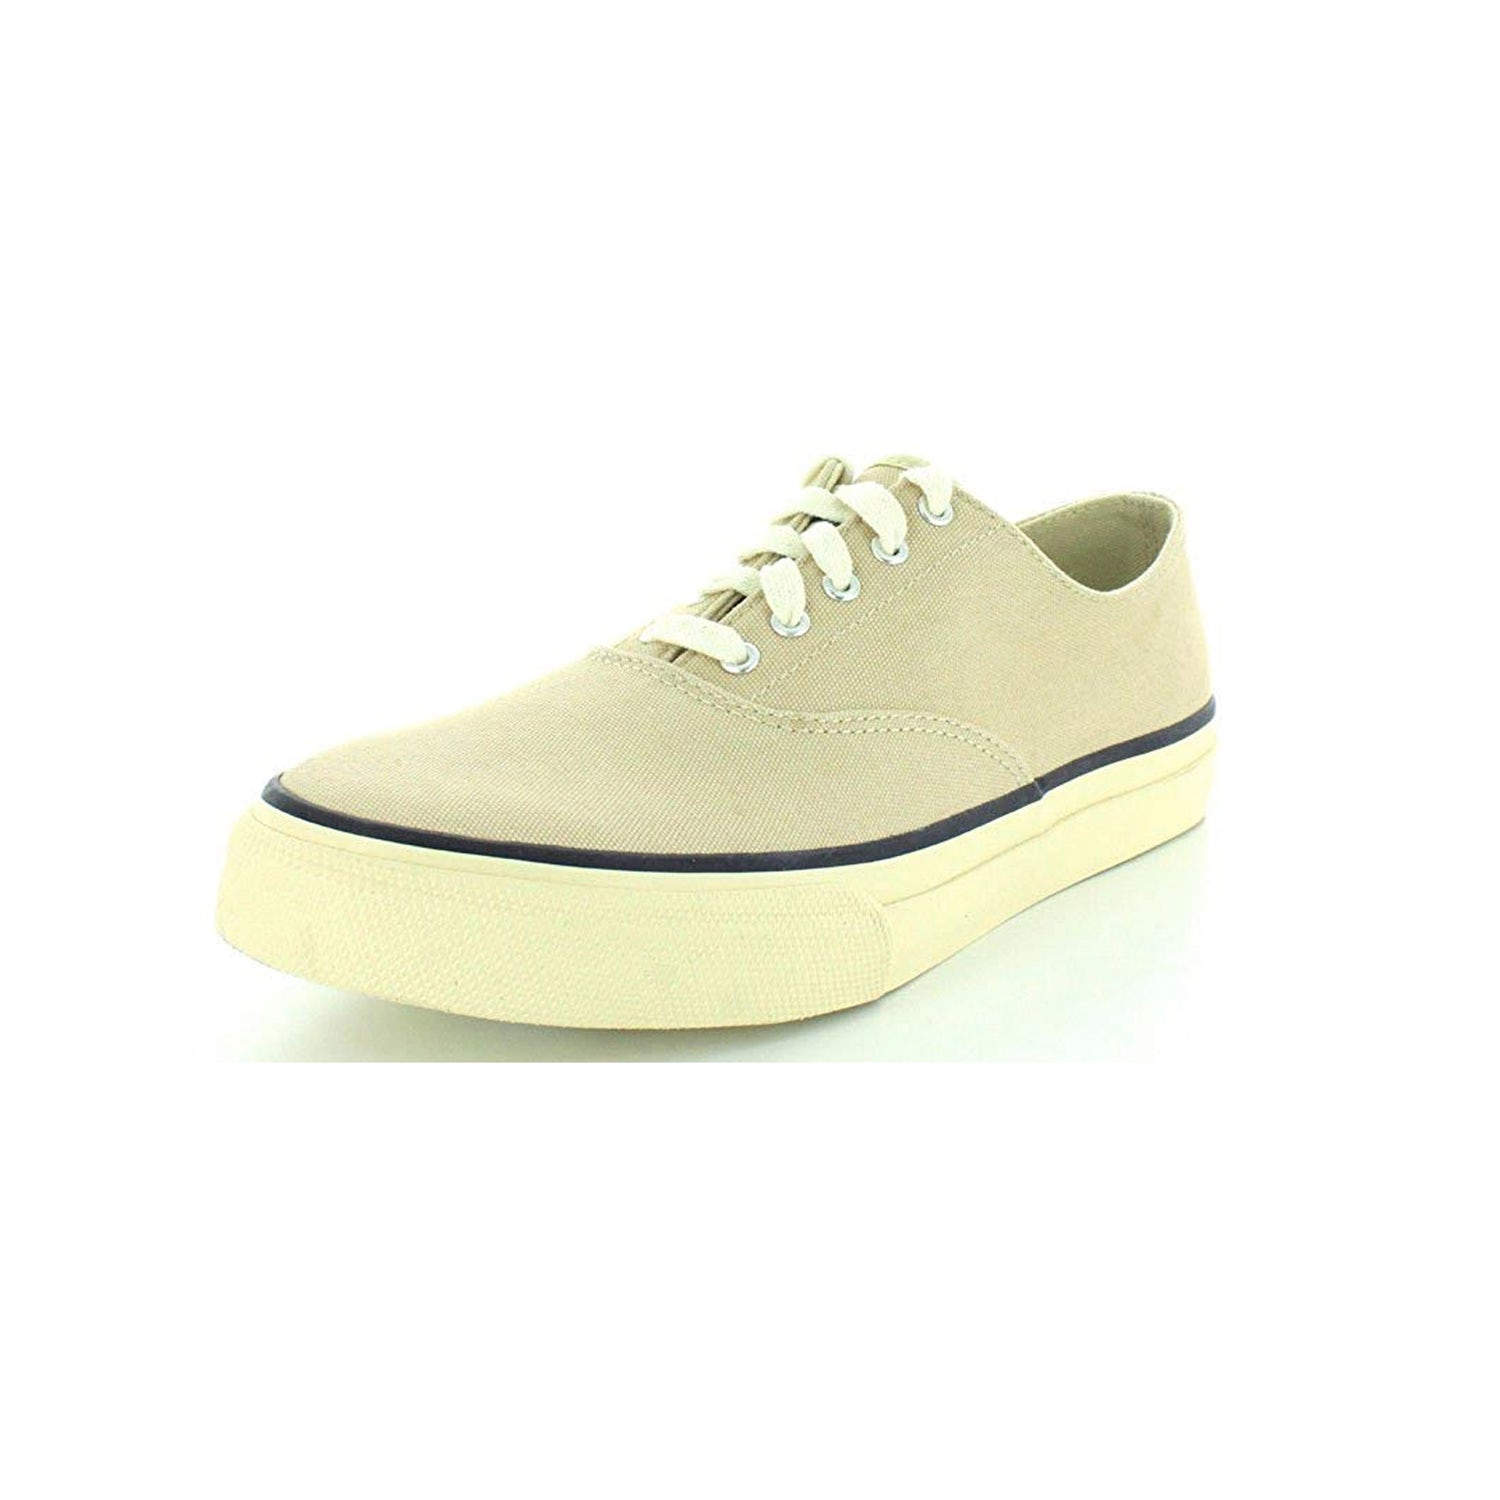 42 Sperry Topsider Cloud